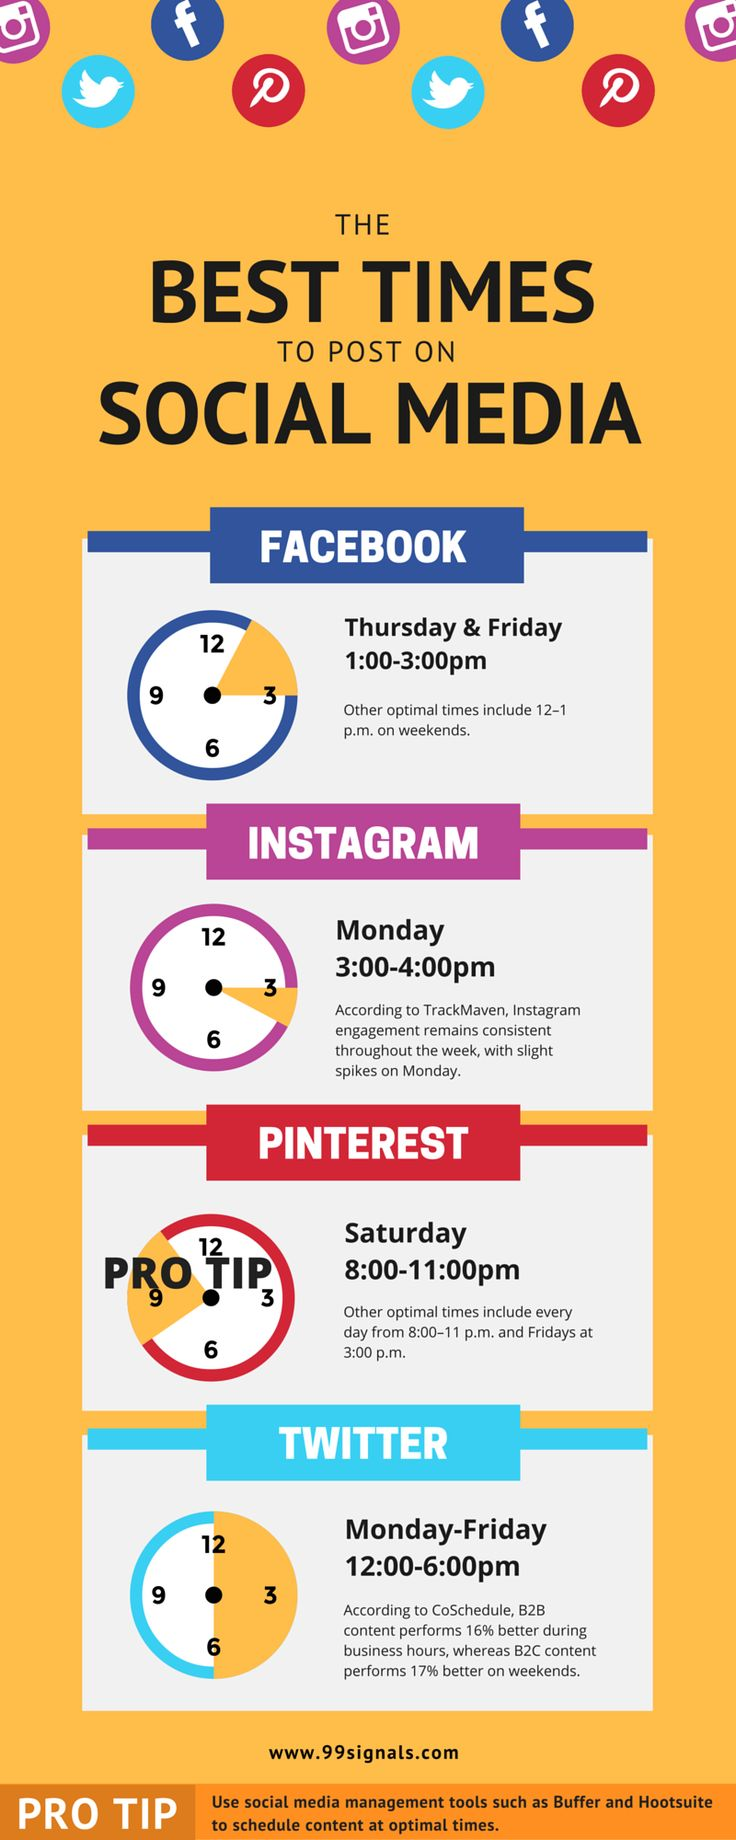 The Best Times to Post on Social Media [Infographic] #SMM #SocialMediaMarketing #ContentMarketing #Infographic